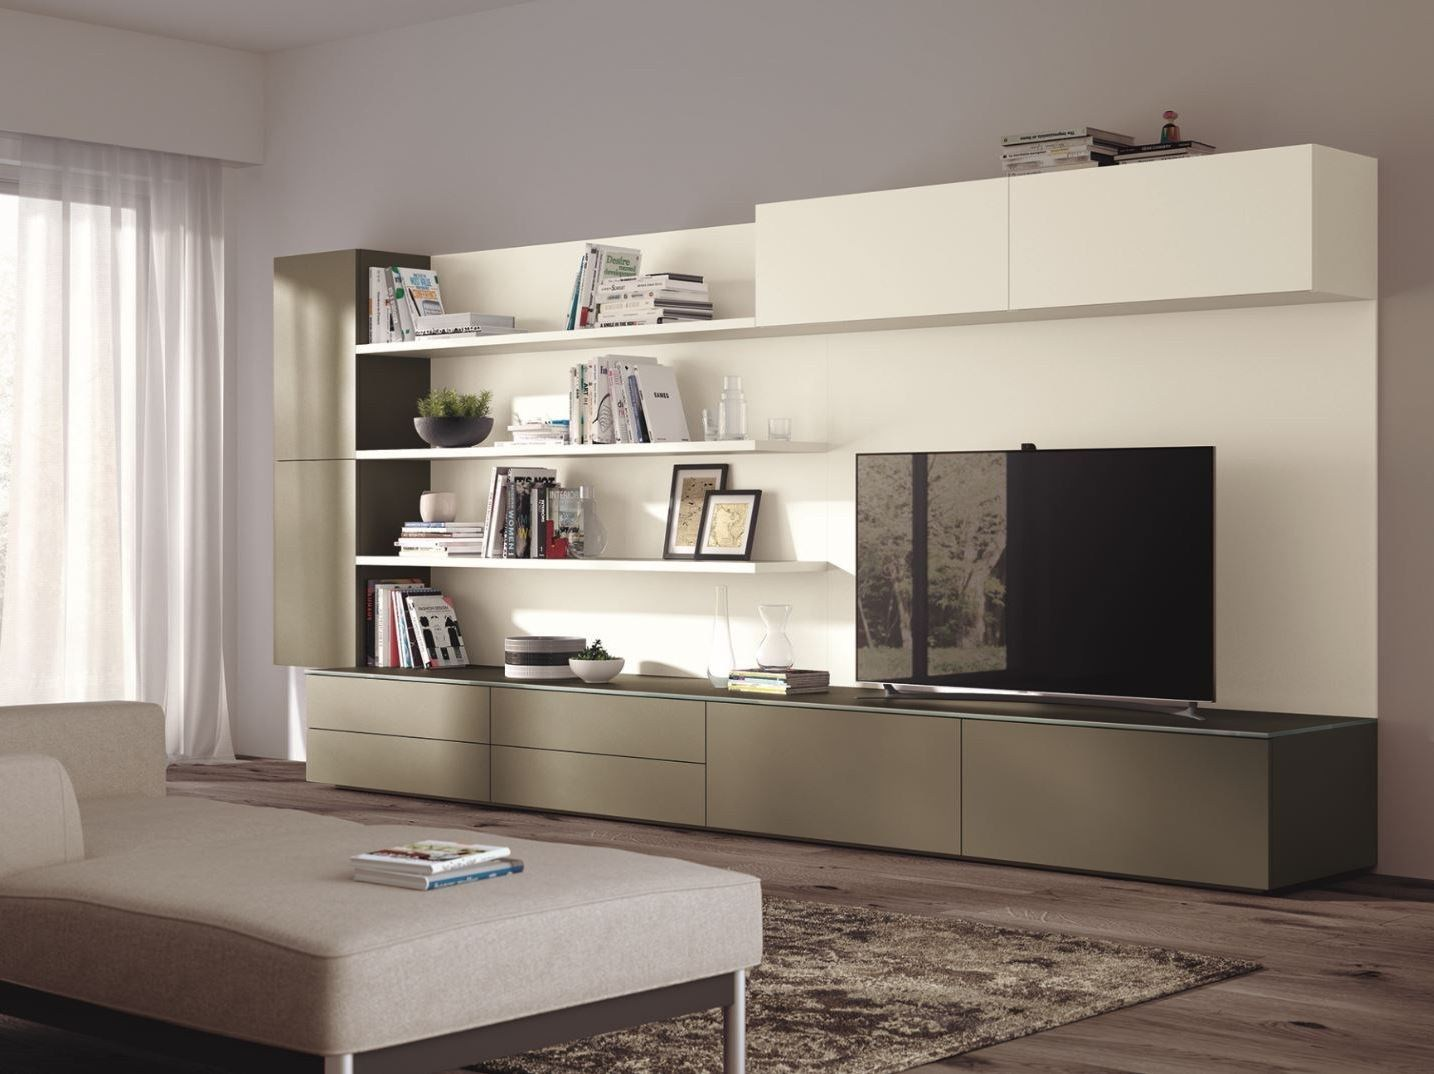 Indipendent Modular Storage Units Indipendent Living Rooms